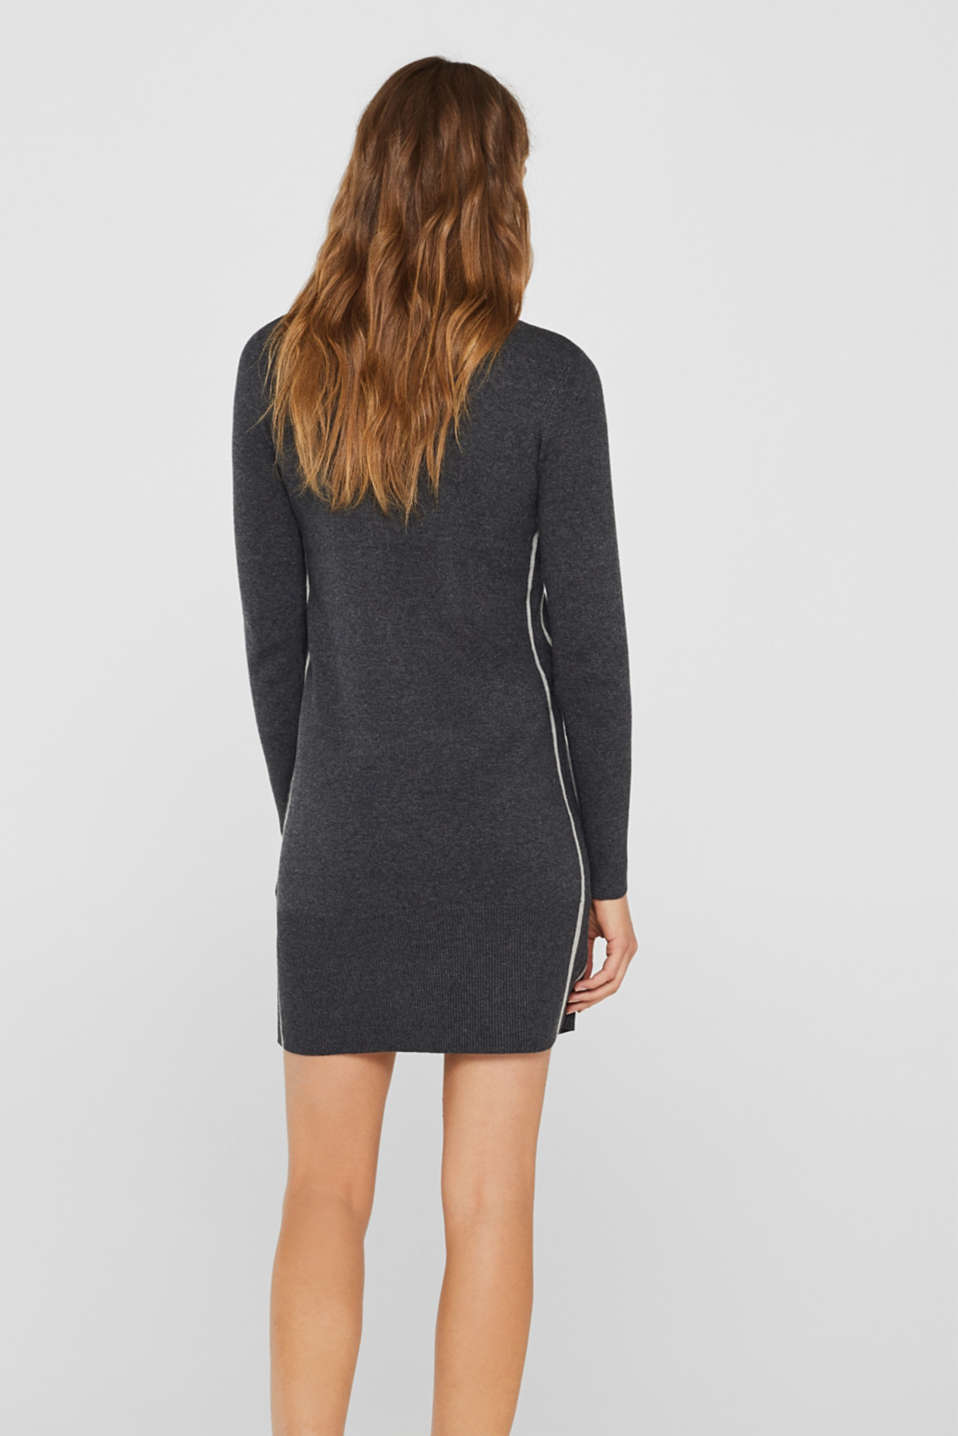 Knit dress with a zip-up band collar, GUNMETAL 5, detail image number 2